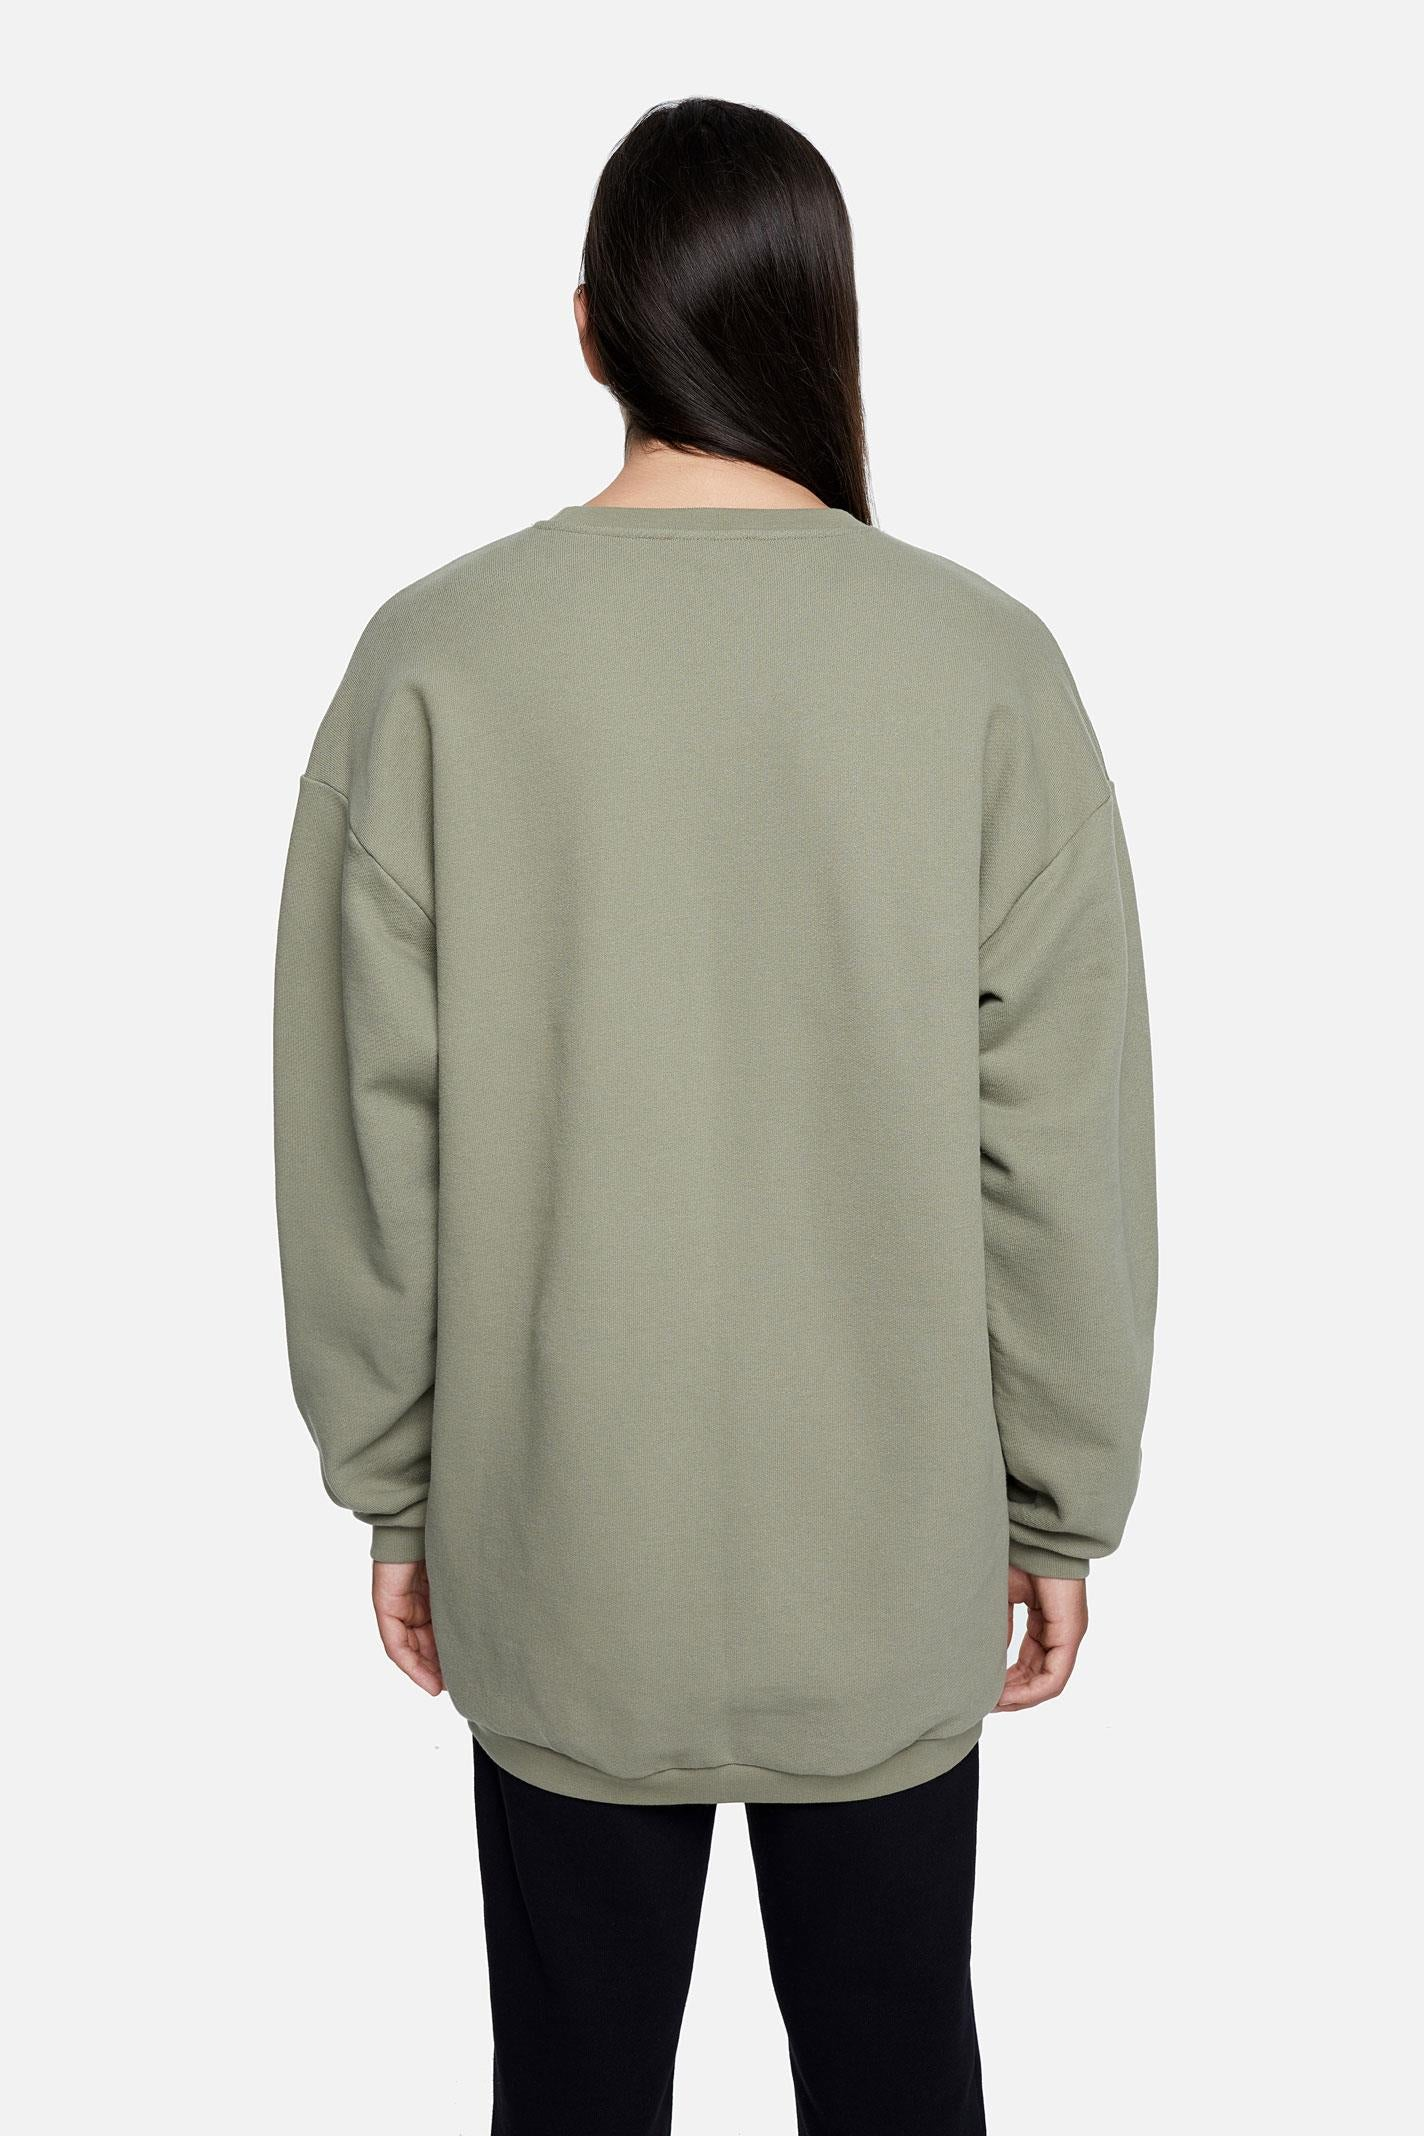 BASIC SWEATSHIRT 007